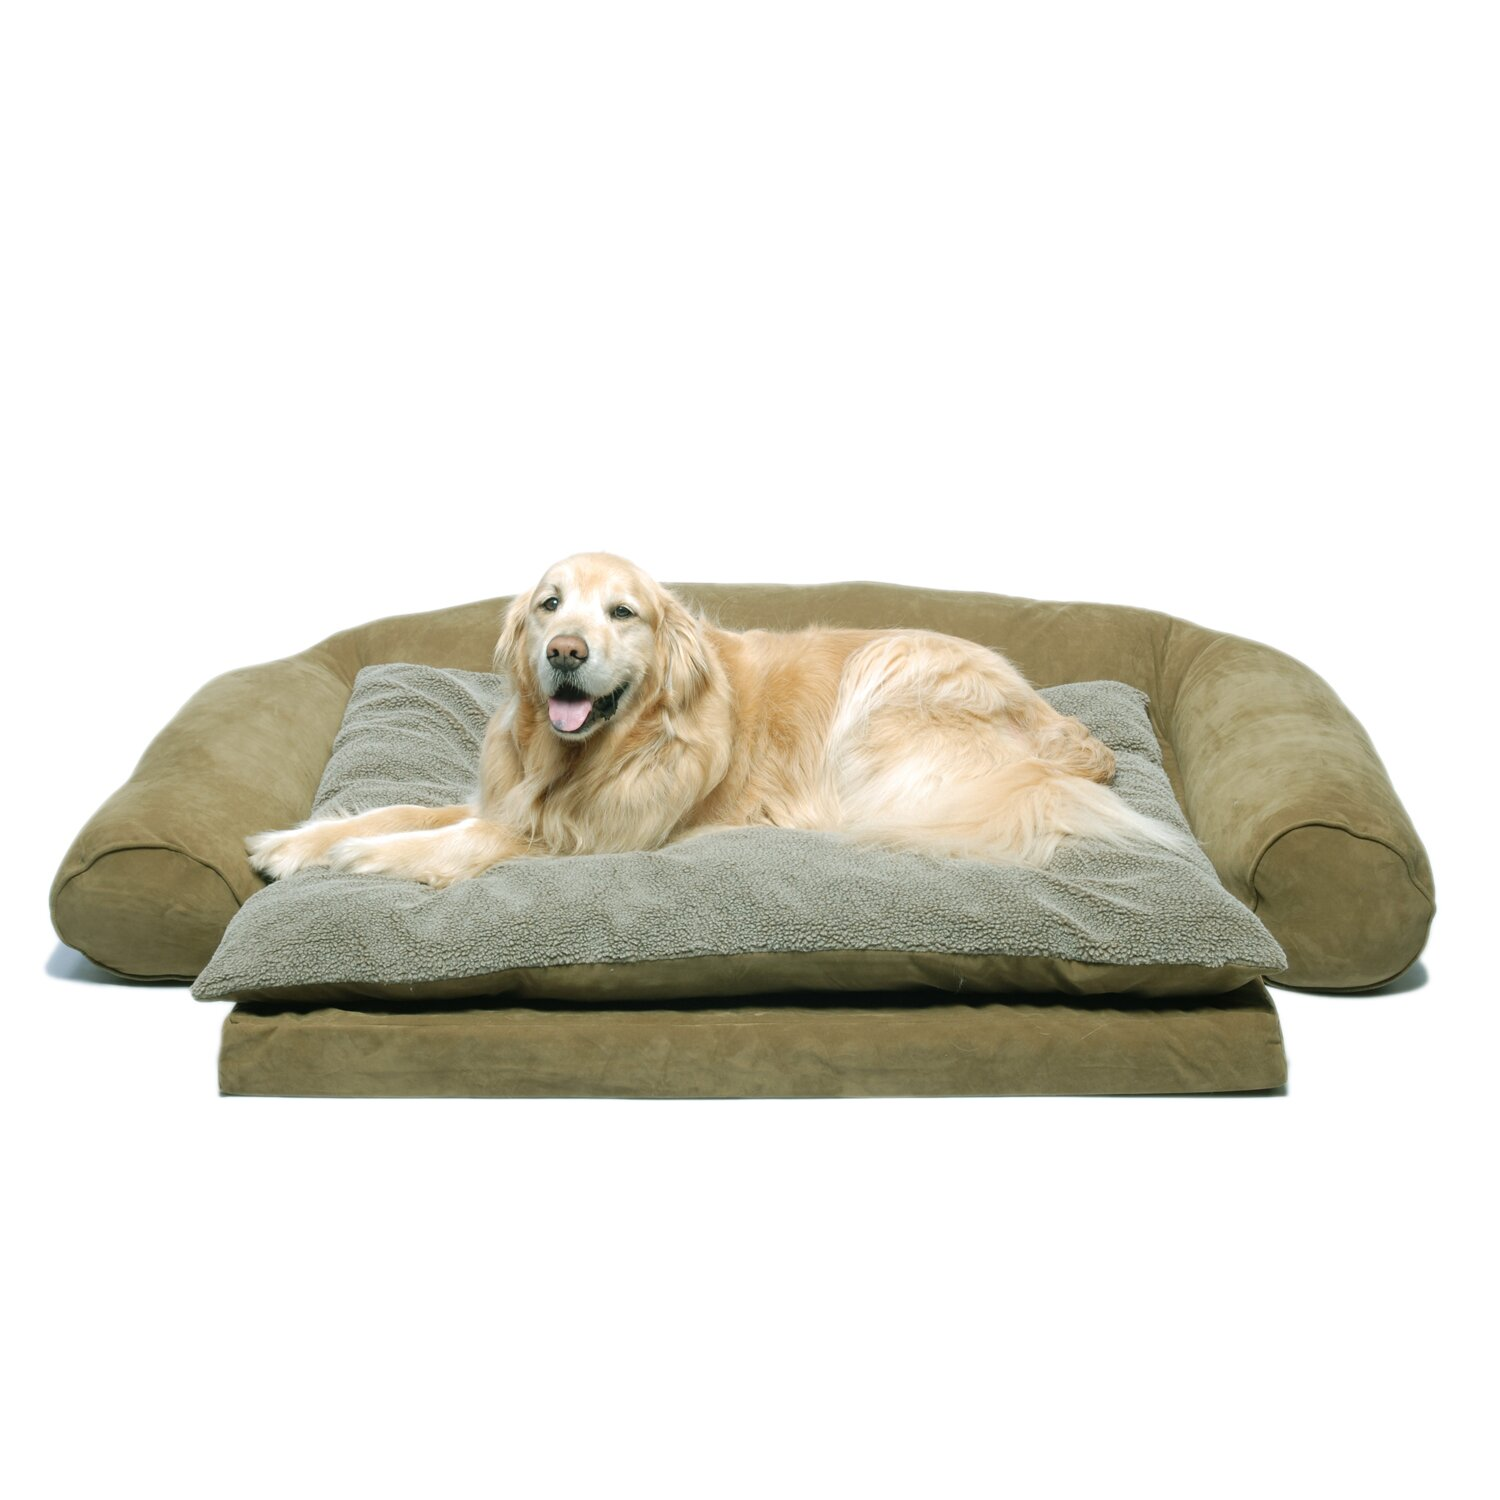 pillows pet supplies n furniture gray premium home indestructible bed medium b beds outdoors the dog depot wildlife